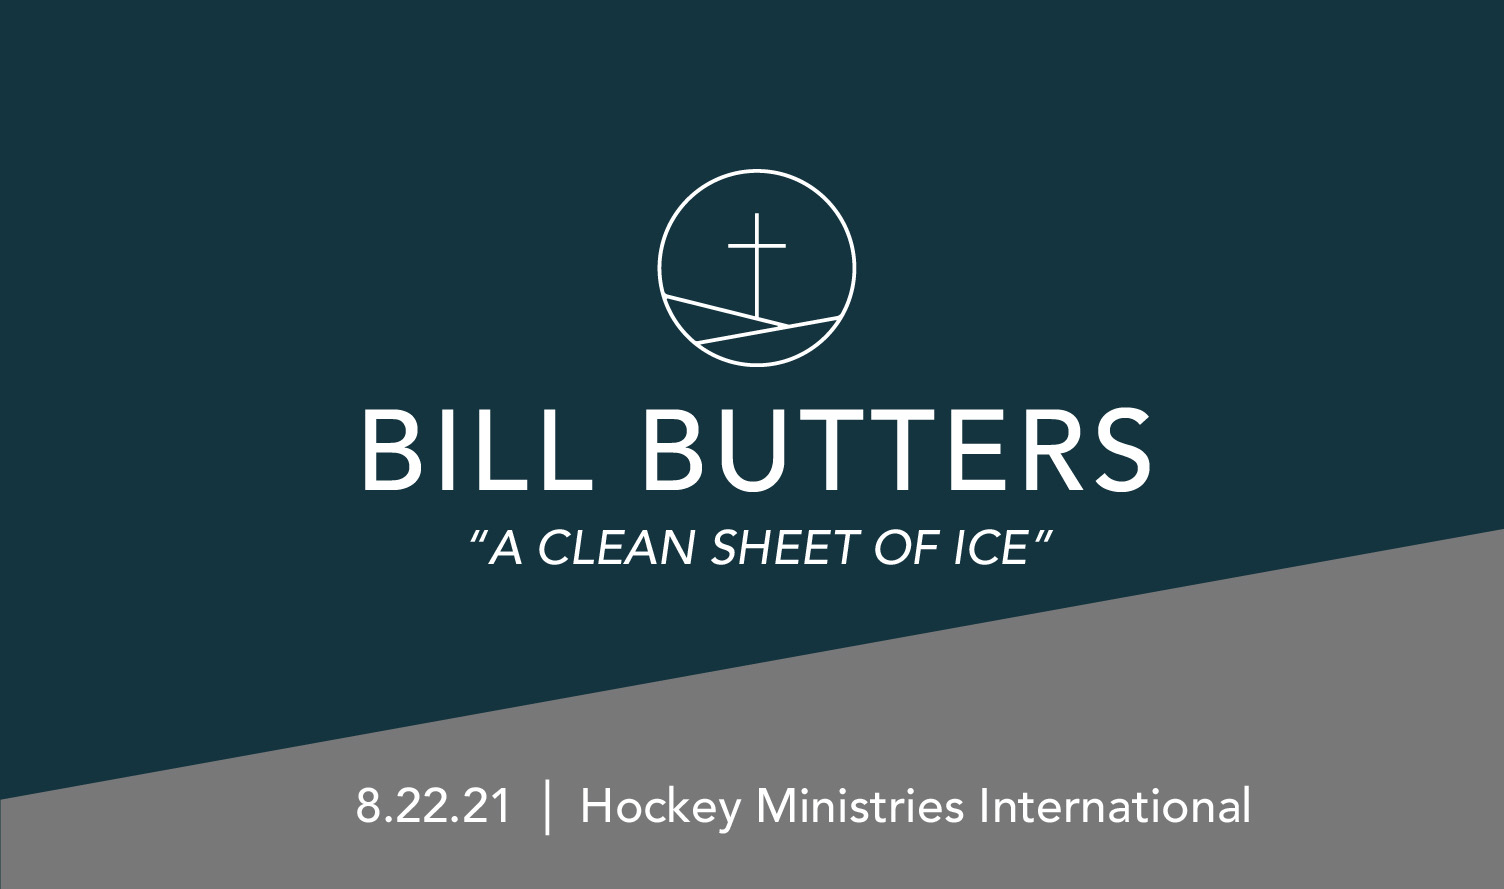 A Clean Sheet of Ice